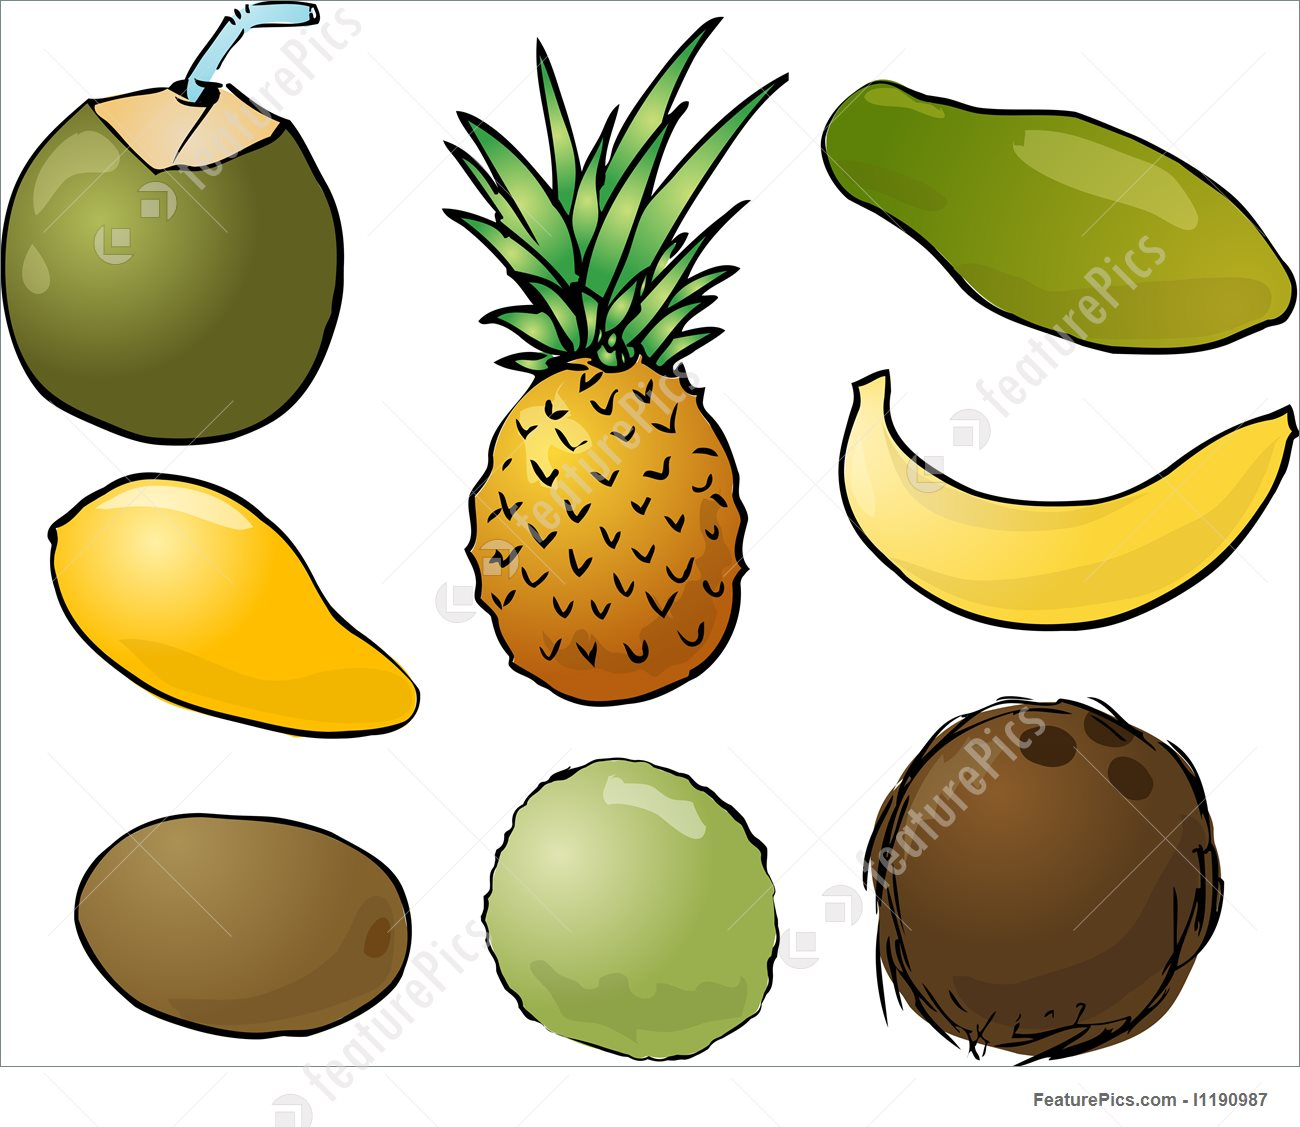 Illustration Of Tropical Fruits.